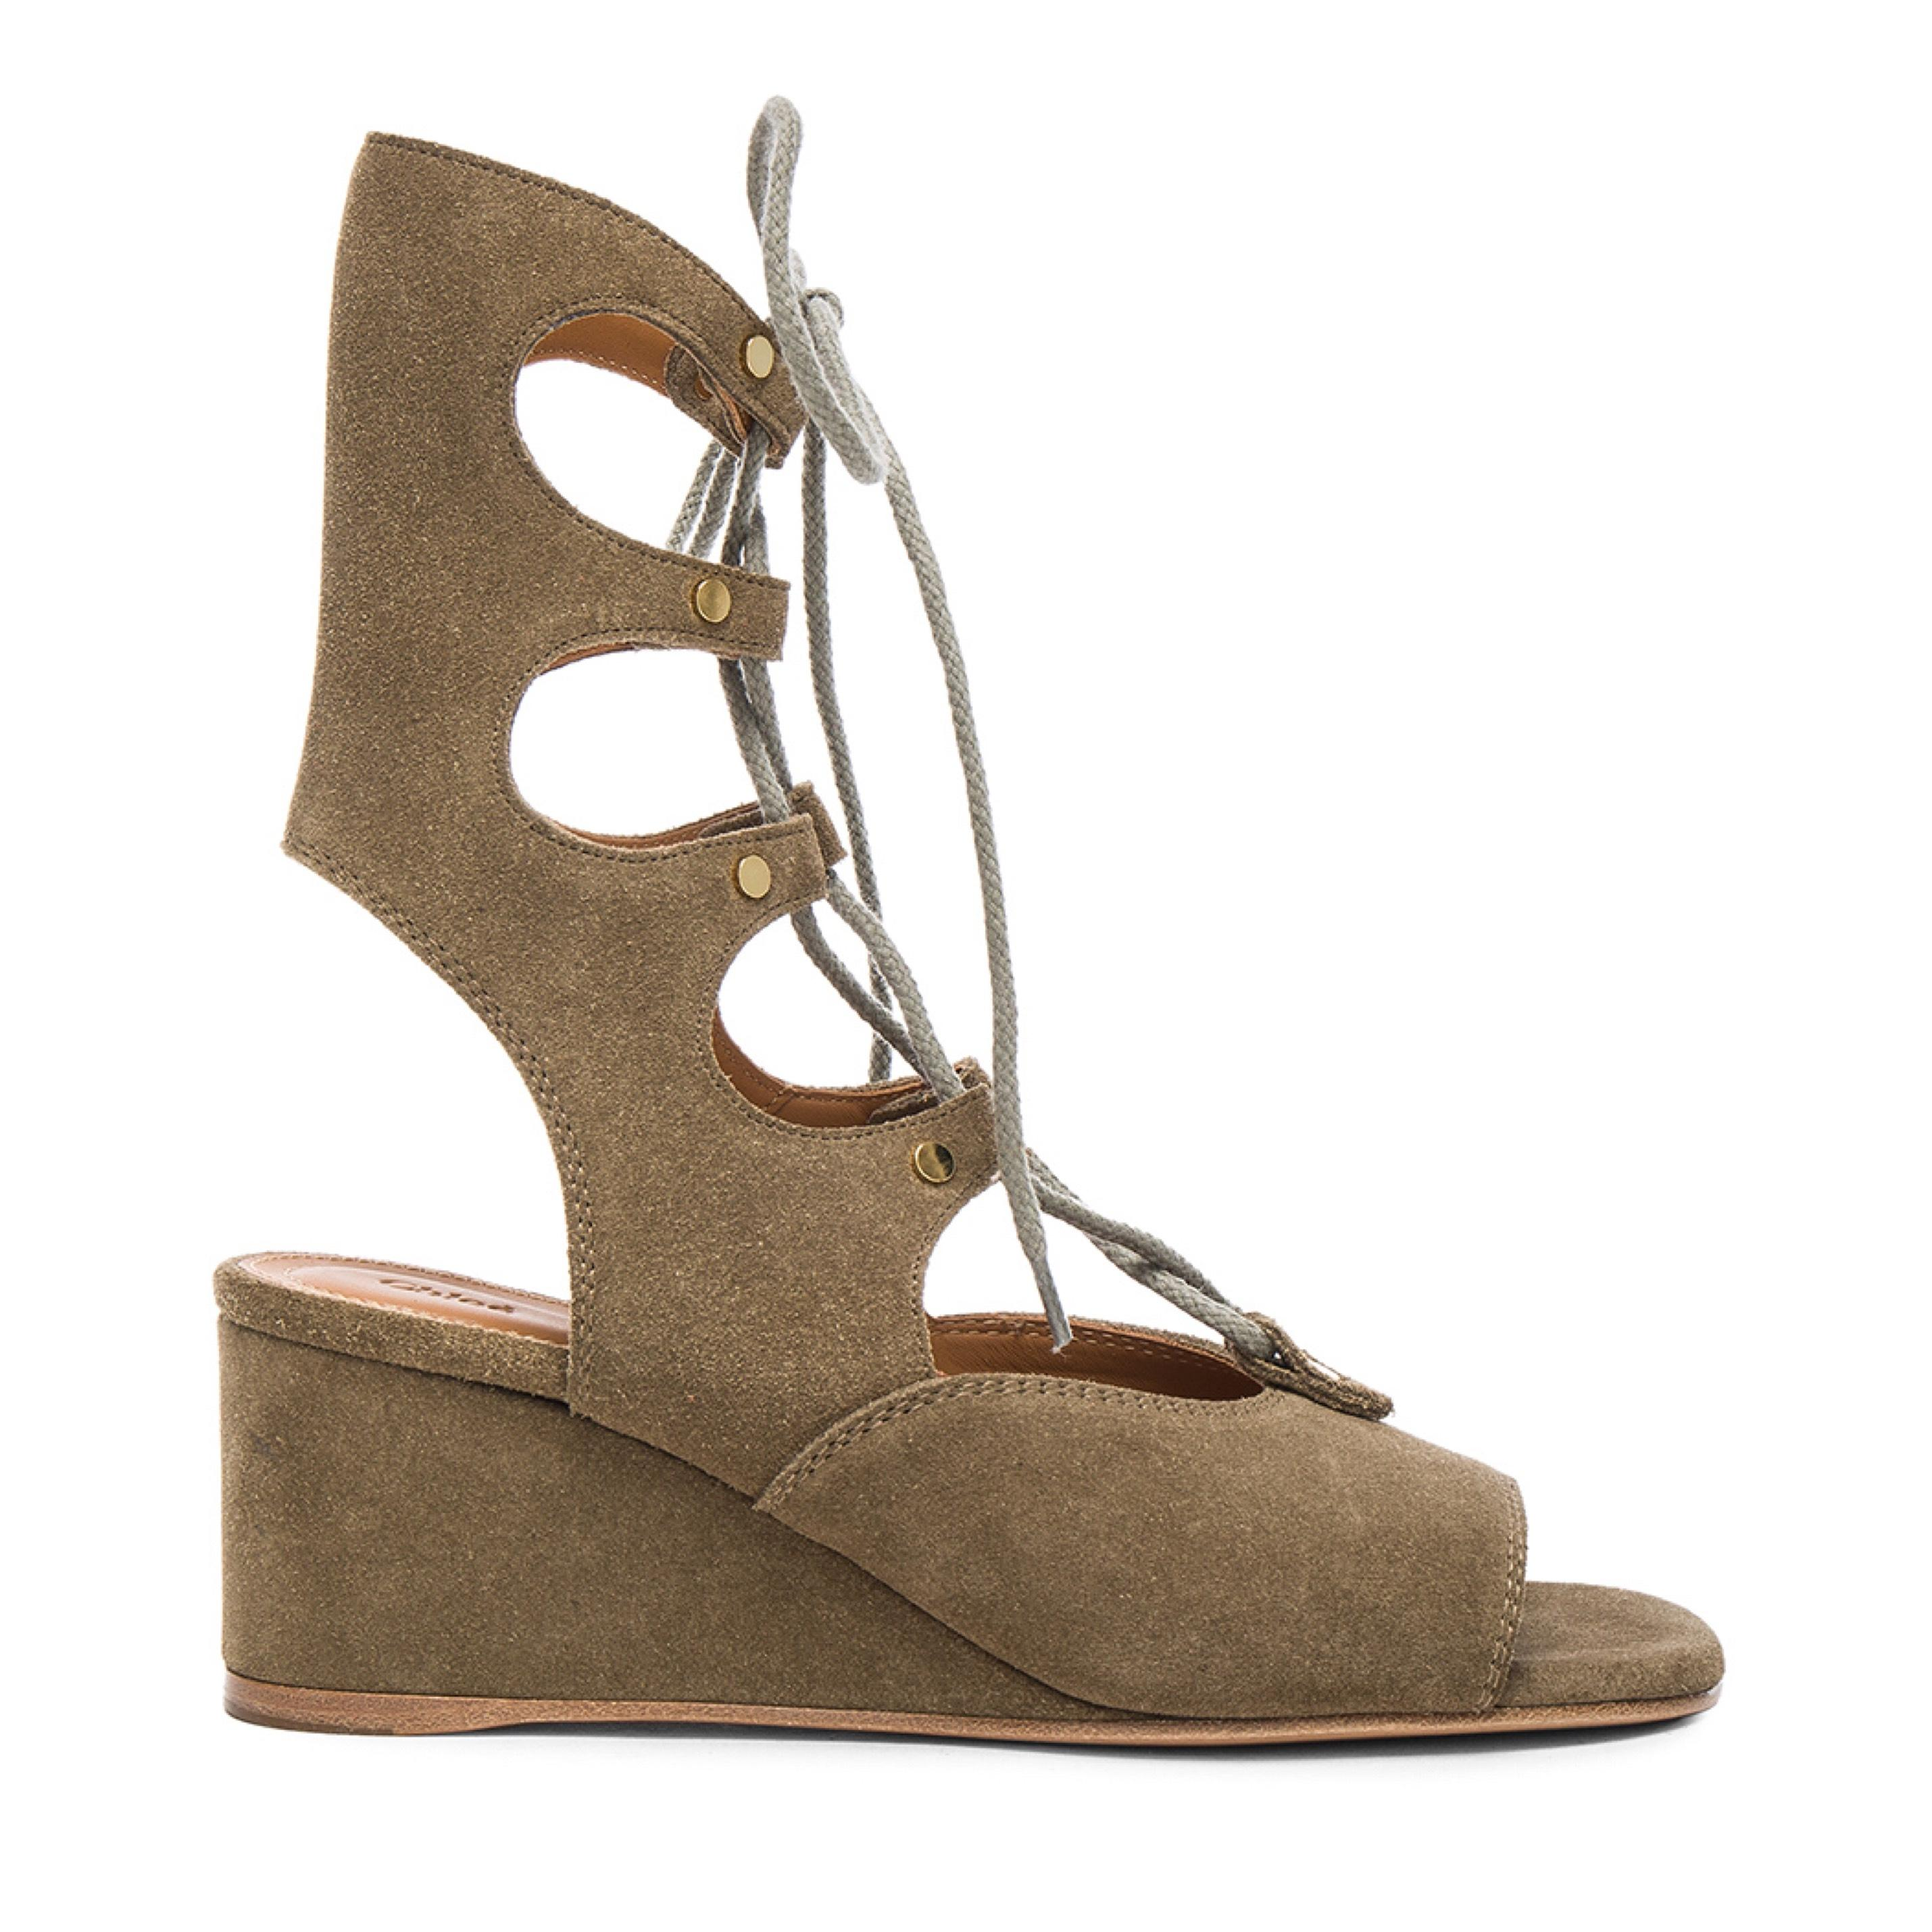 Chloé Suede Lace-Up Wedges w/ Tags sale pick a best footlocker finishline for sale e5MDo5WCD4